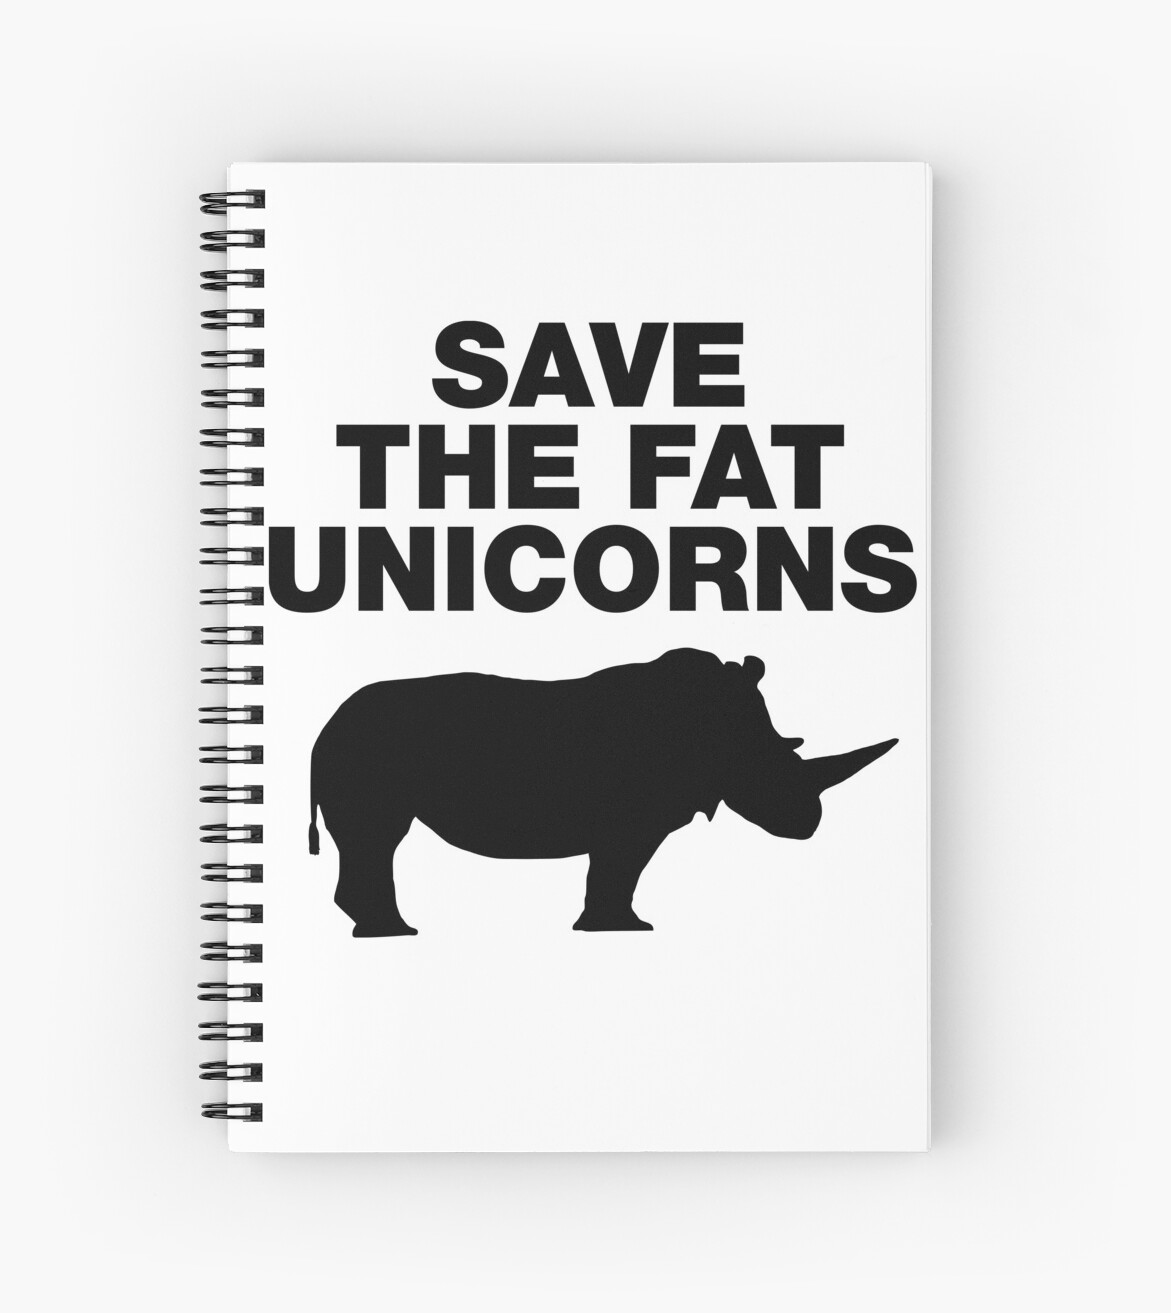 Save The Fat Unicorns Funny Quotes Unicorn Sayings Spiral Notebooks